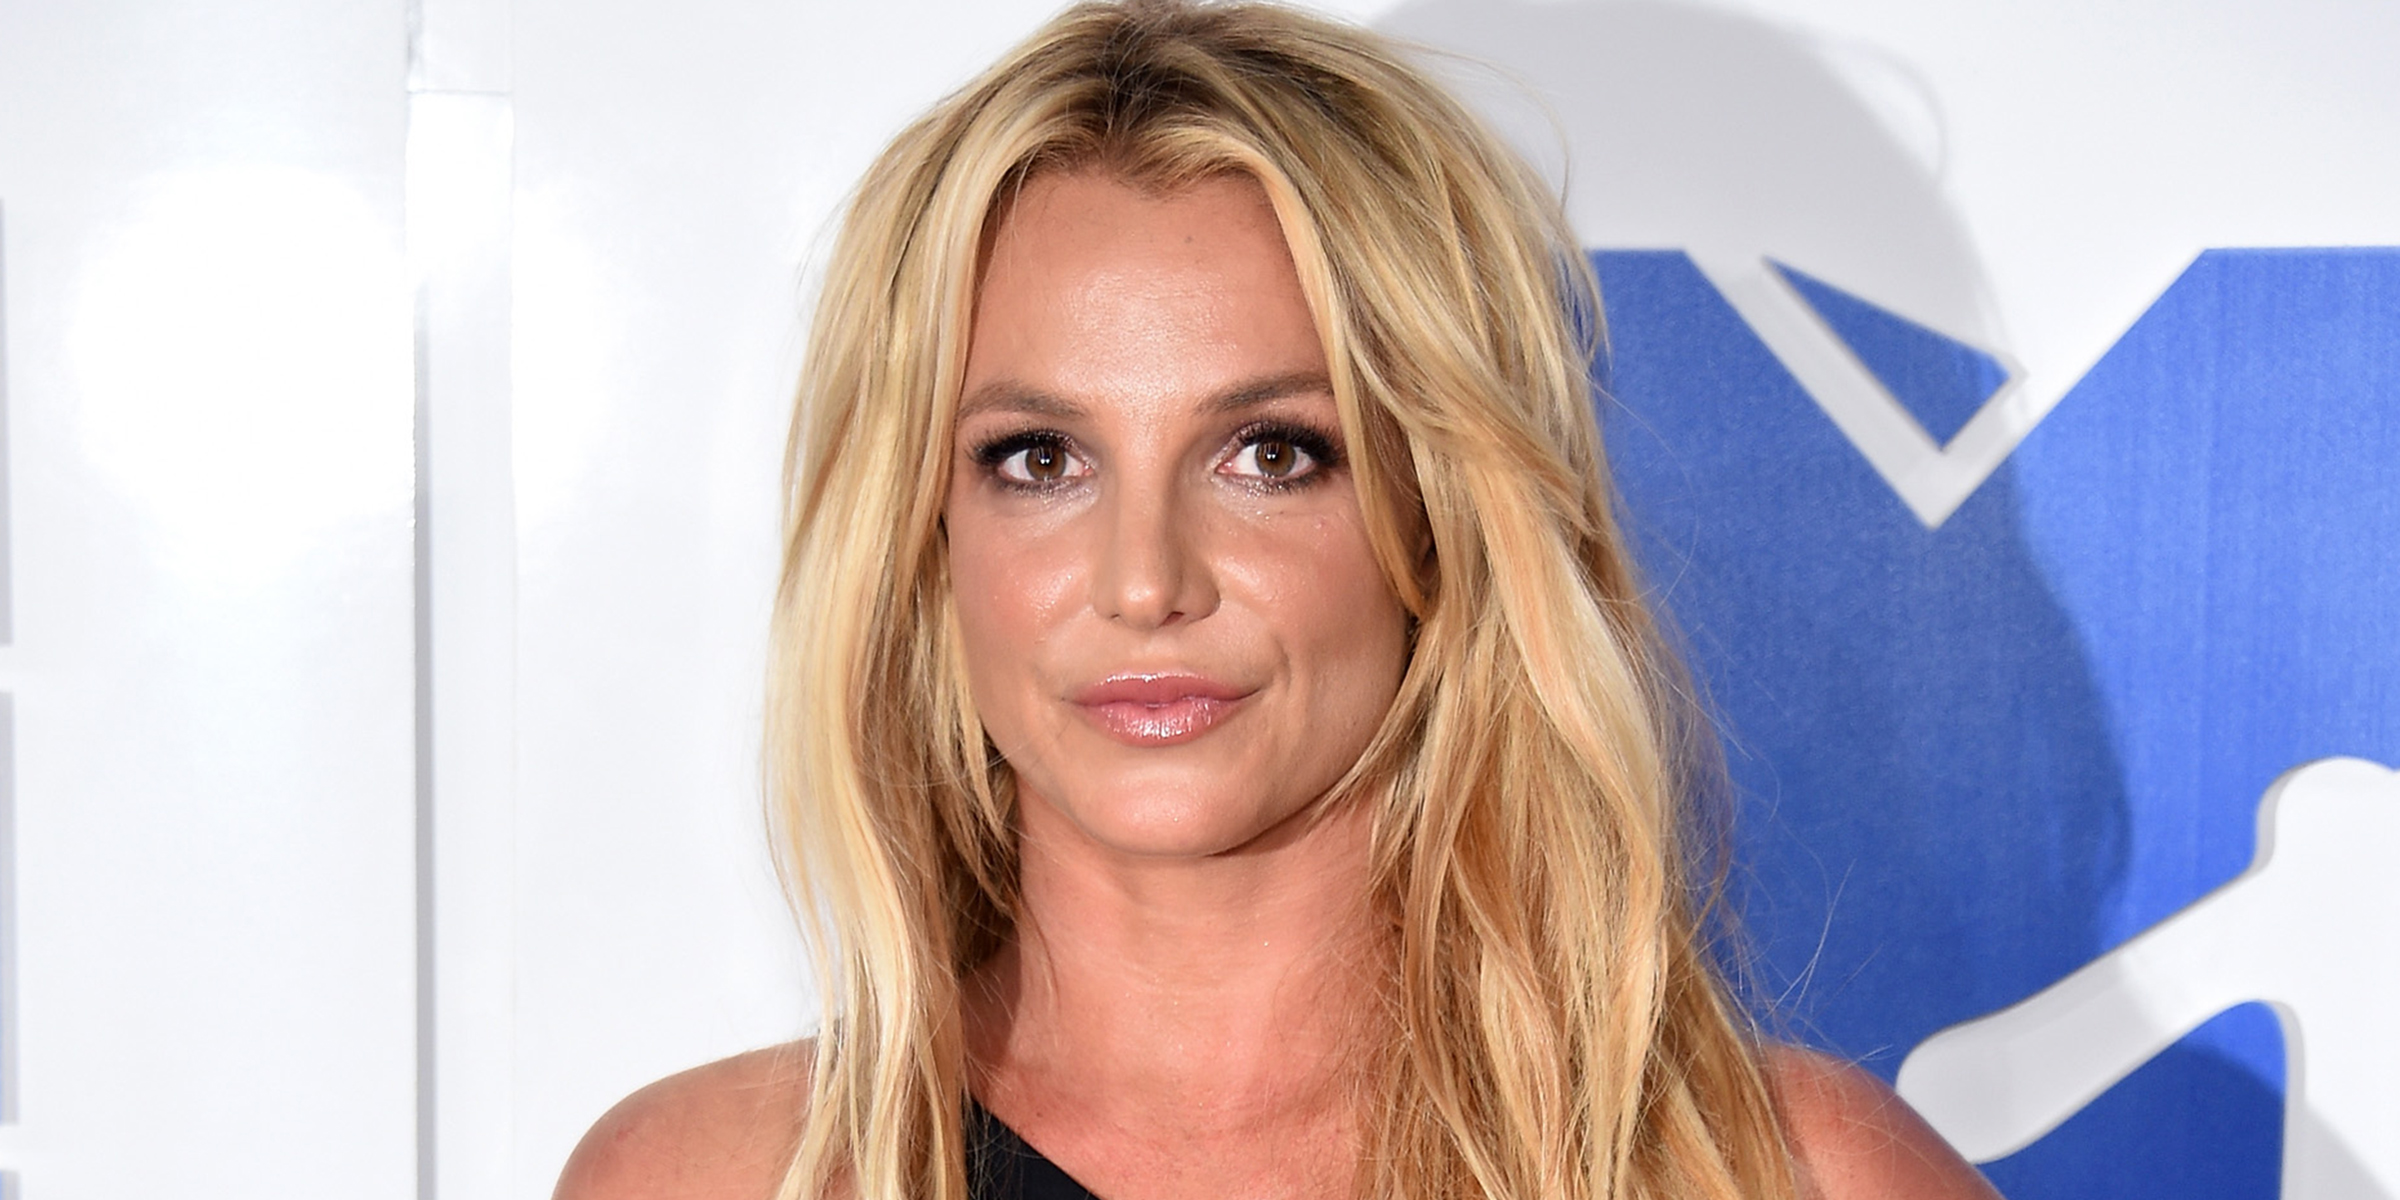 Britney Spears says it's hard to share on social media: 'People ...